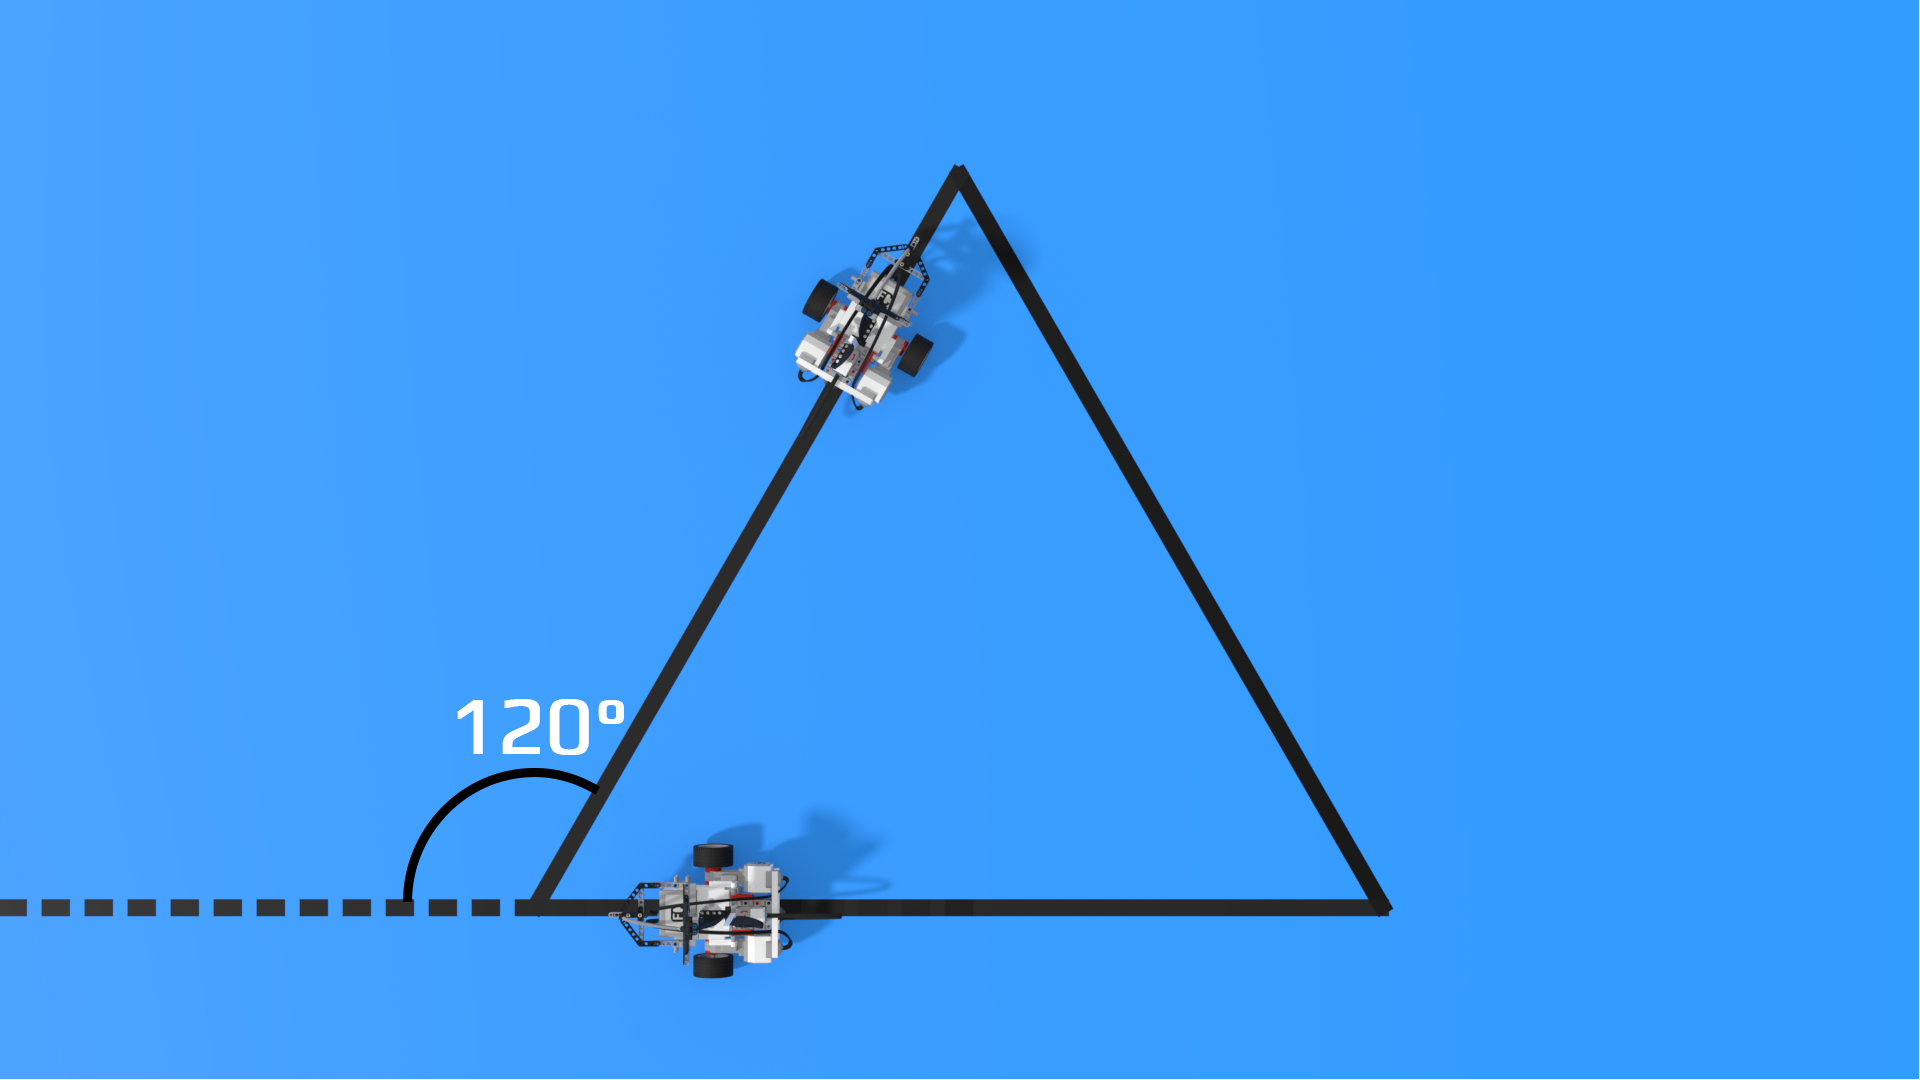 Image explaining outer angle in triangle